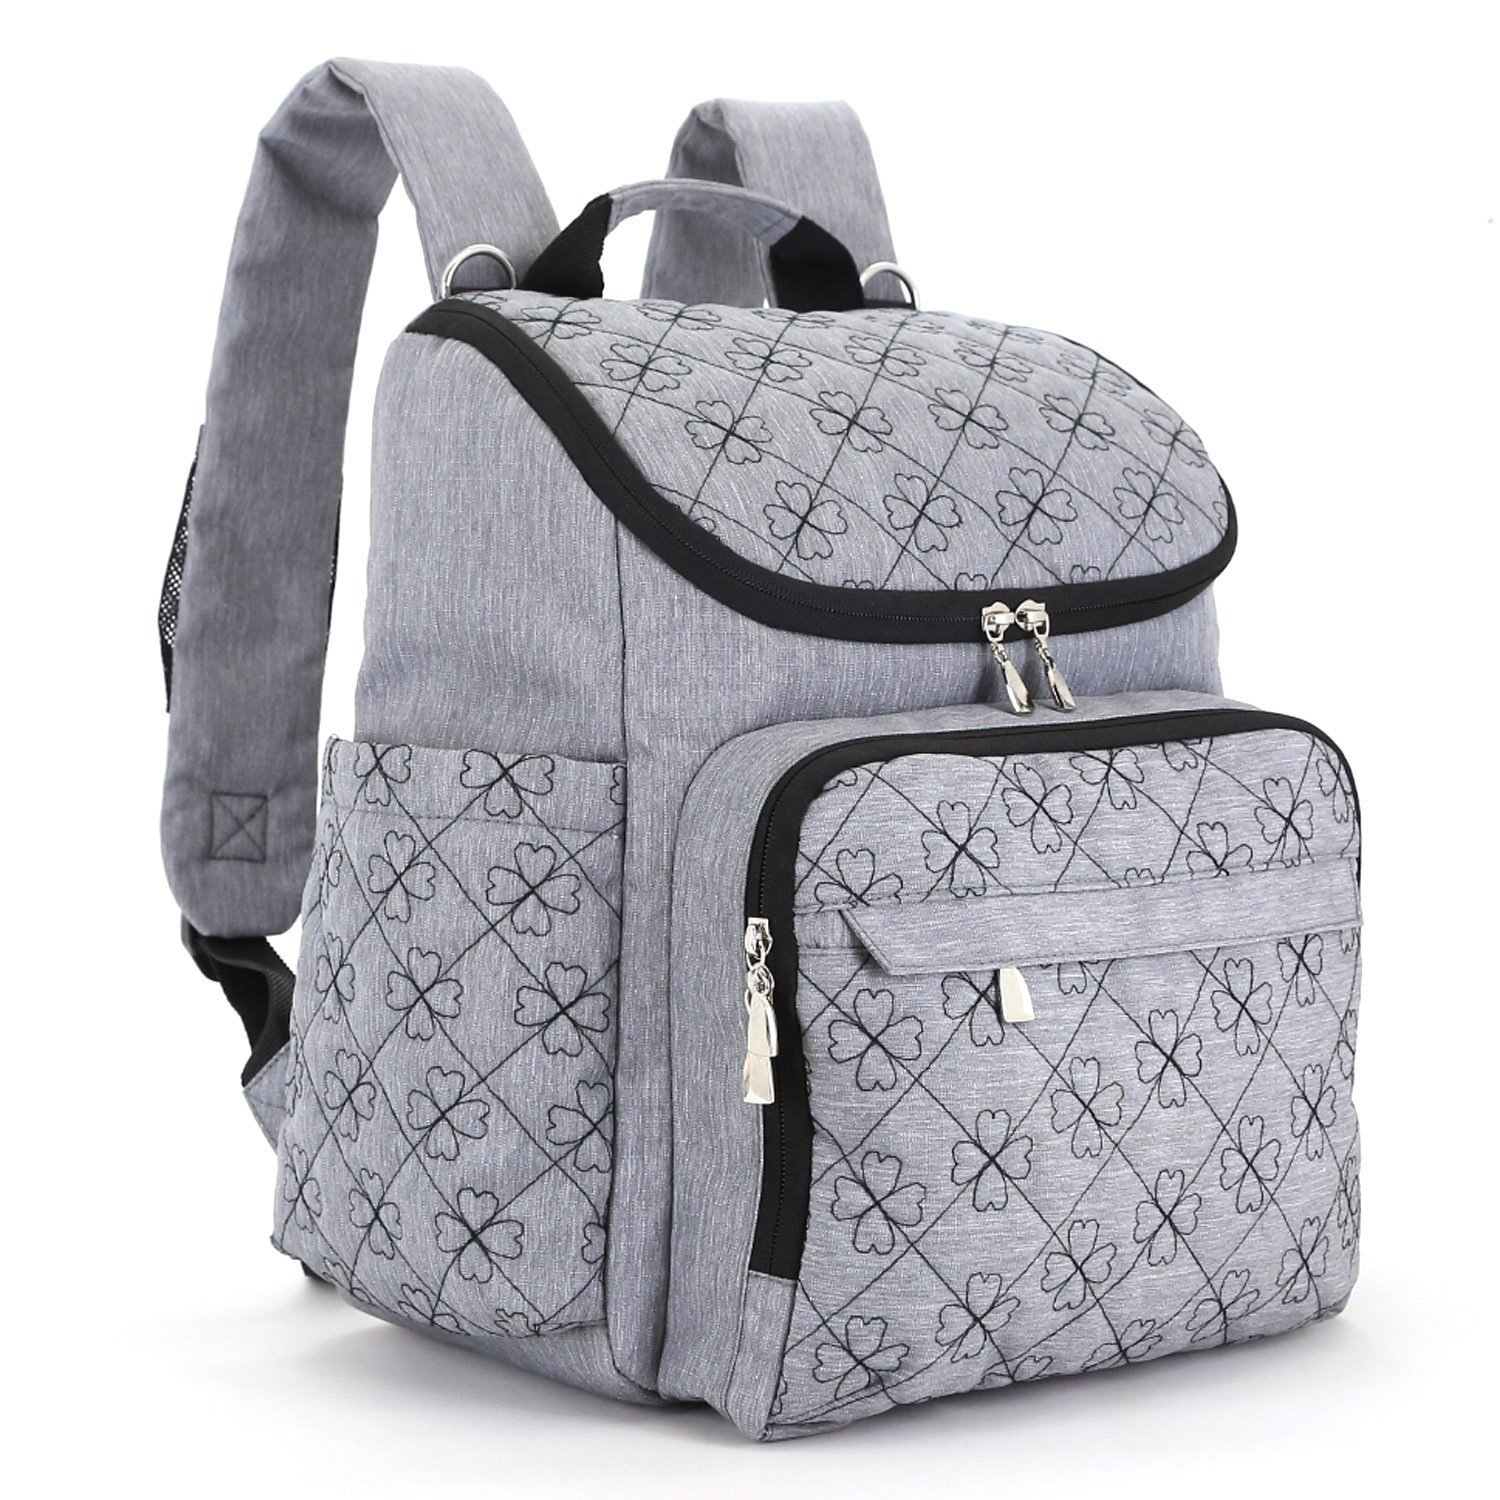 baby bag diaper bag backpack with baby stroller straps by hyblom. AXANCNR